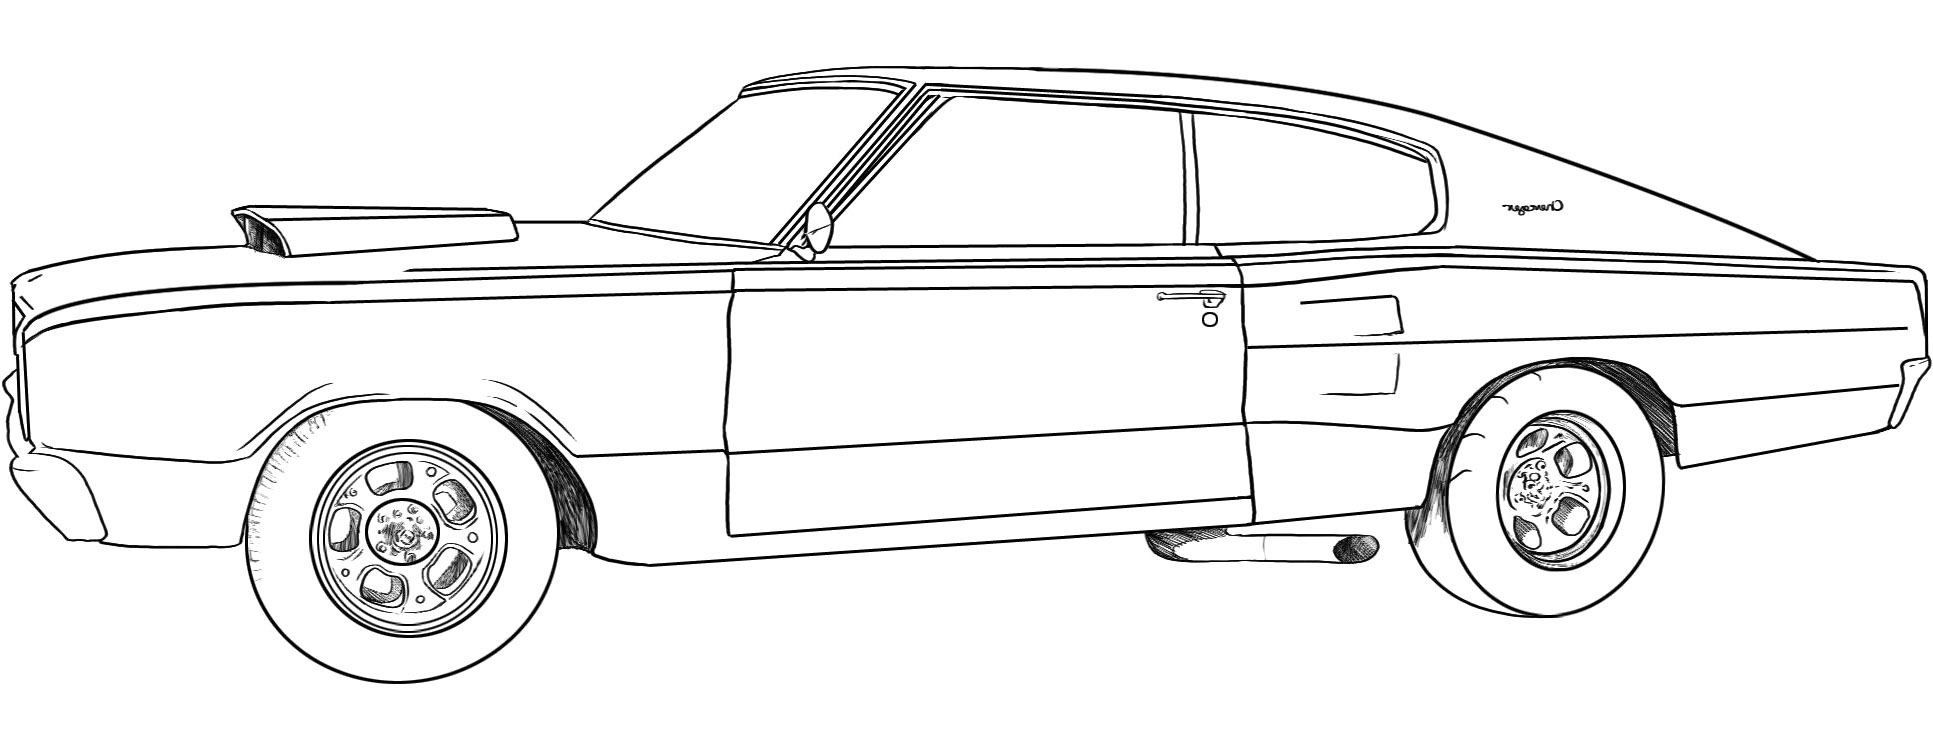 printable dodge charger coloring pages - photo#24